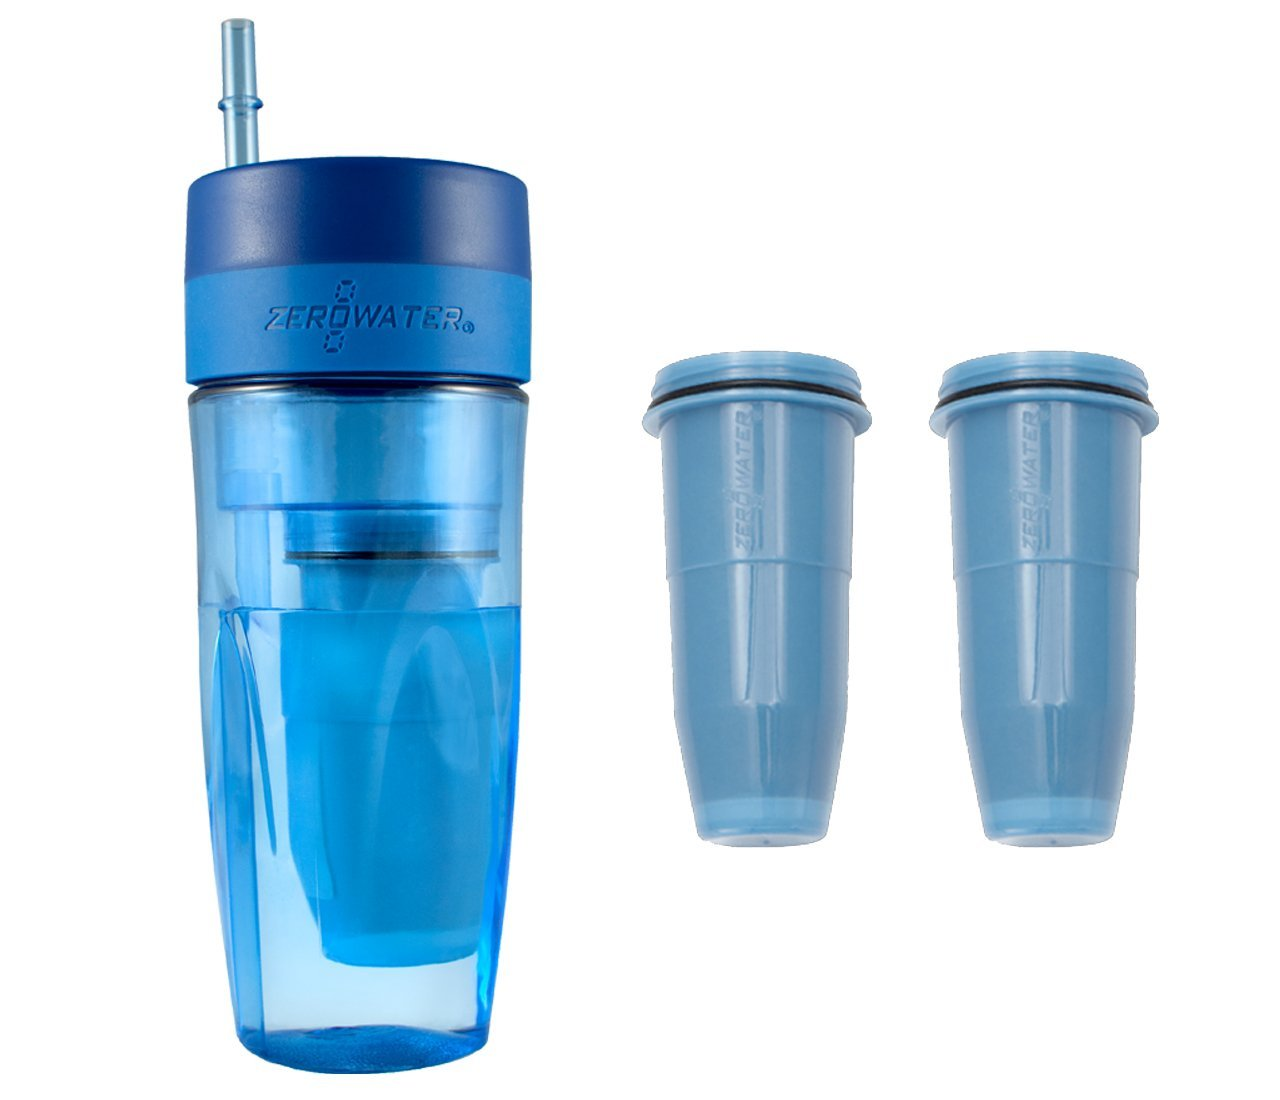 Zero Water Tumbler - filters your water on the go!